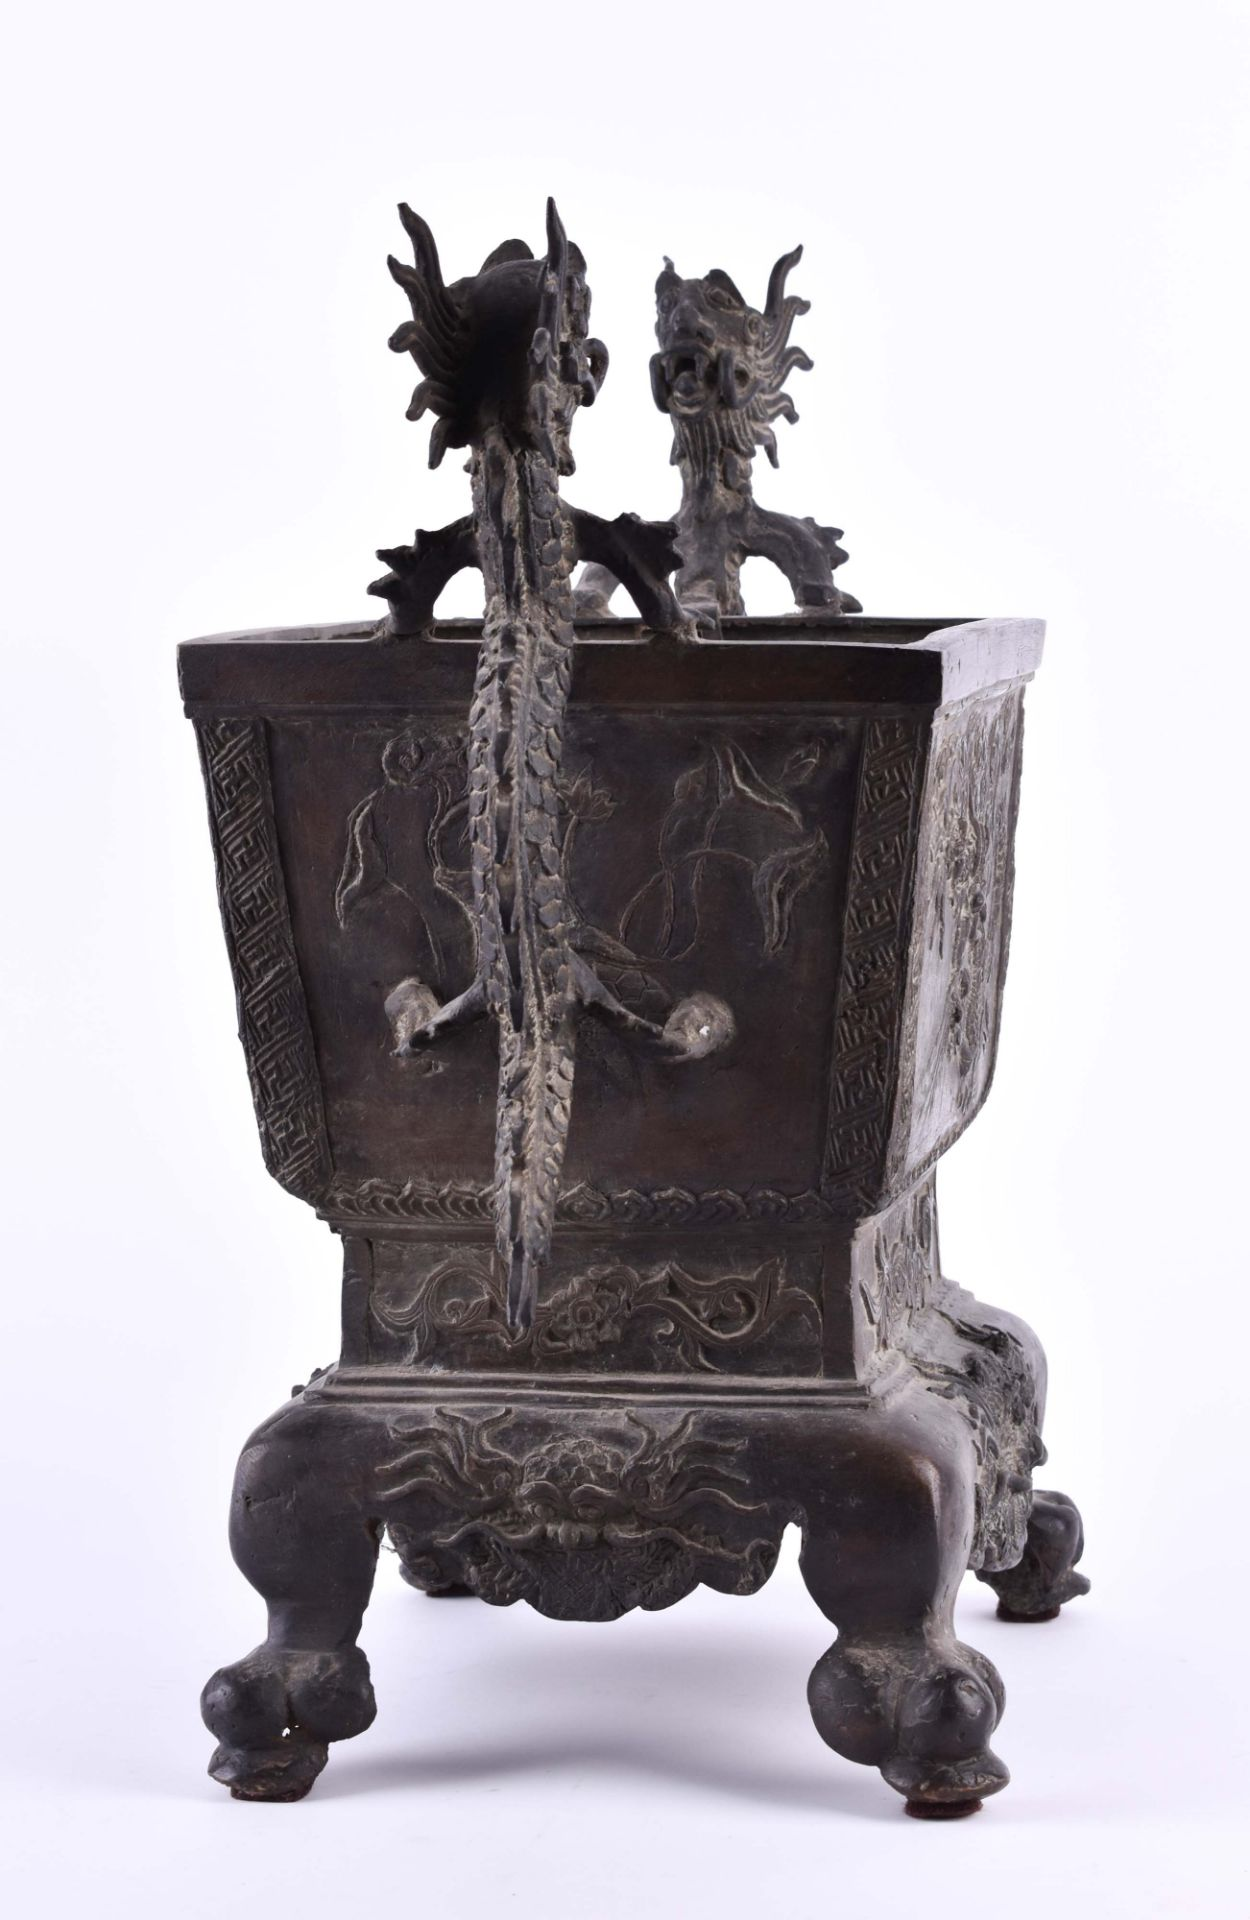 Temple incense burner Southern China, 18th century - Image 3 of 8